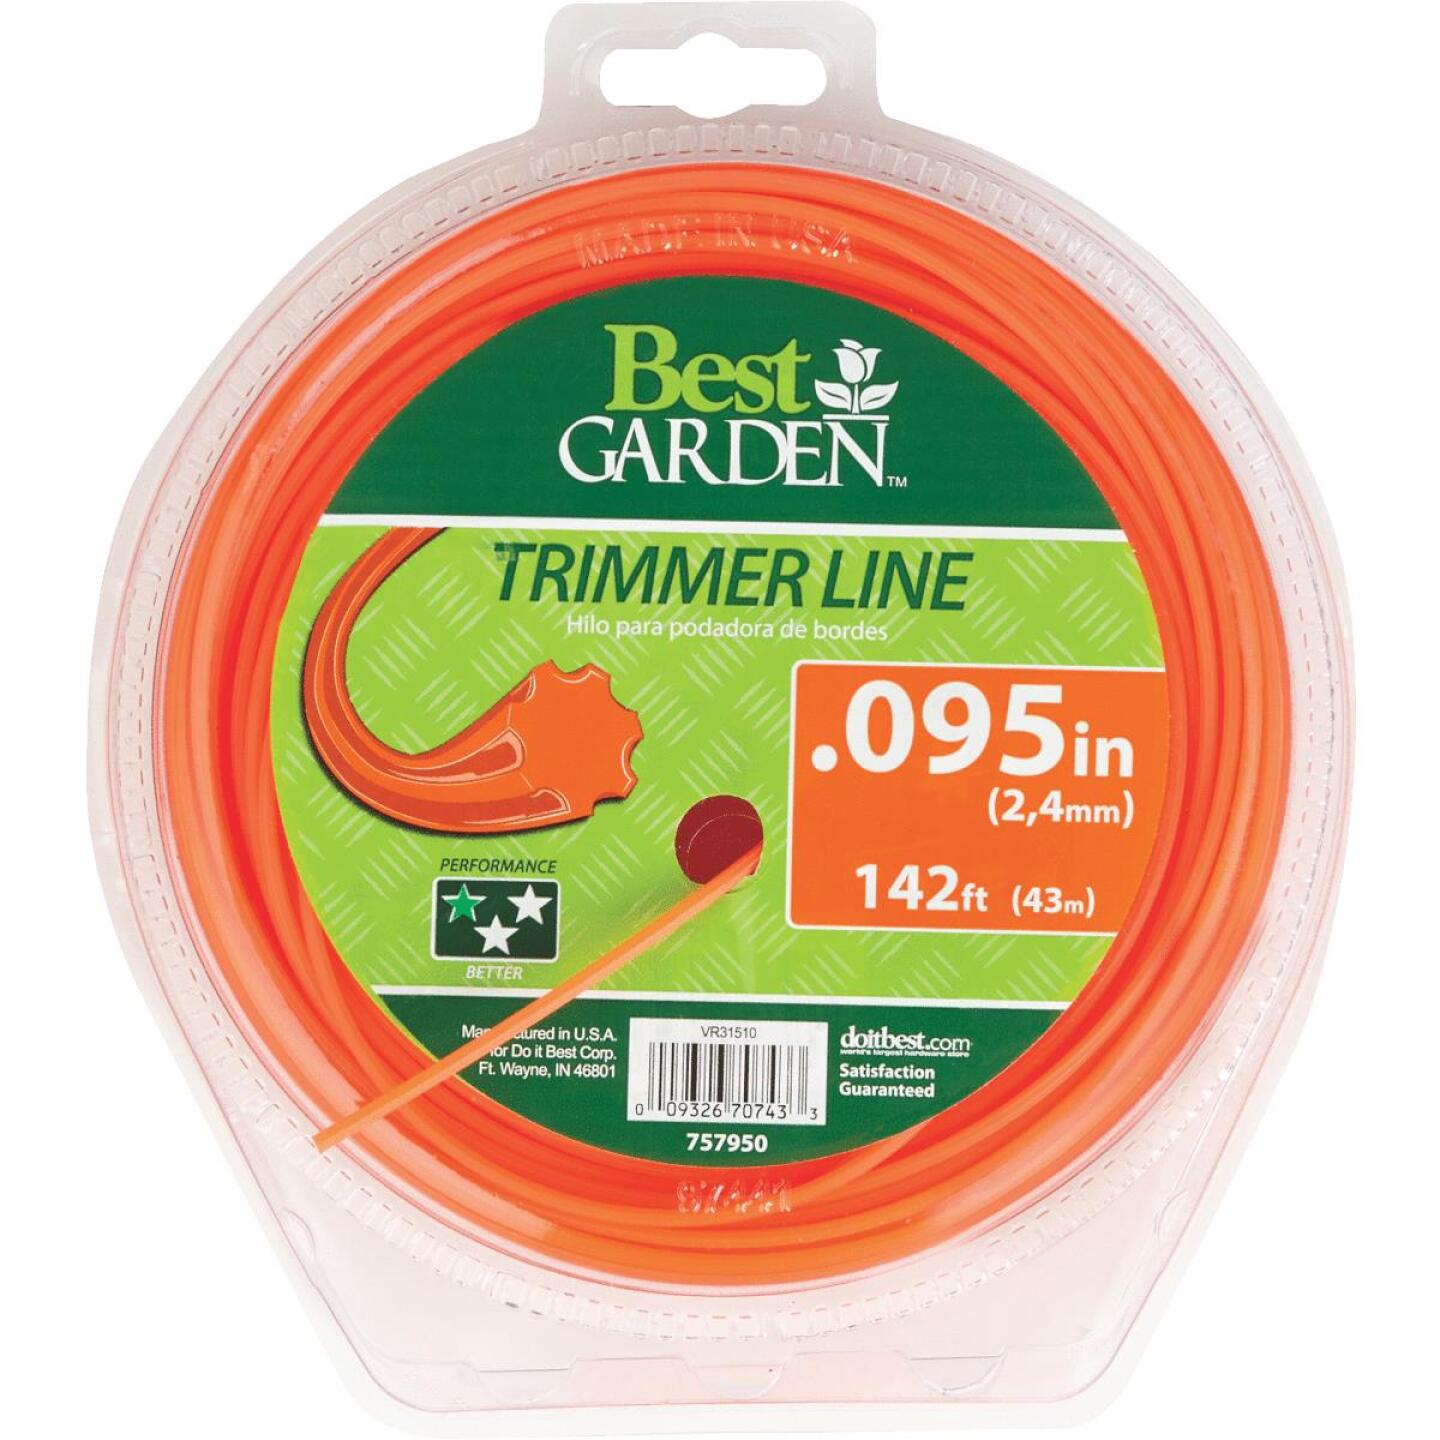 Best Garden 0.095 In. x 142 Ft. 7-Point Trimmer Line Image 1